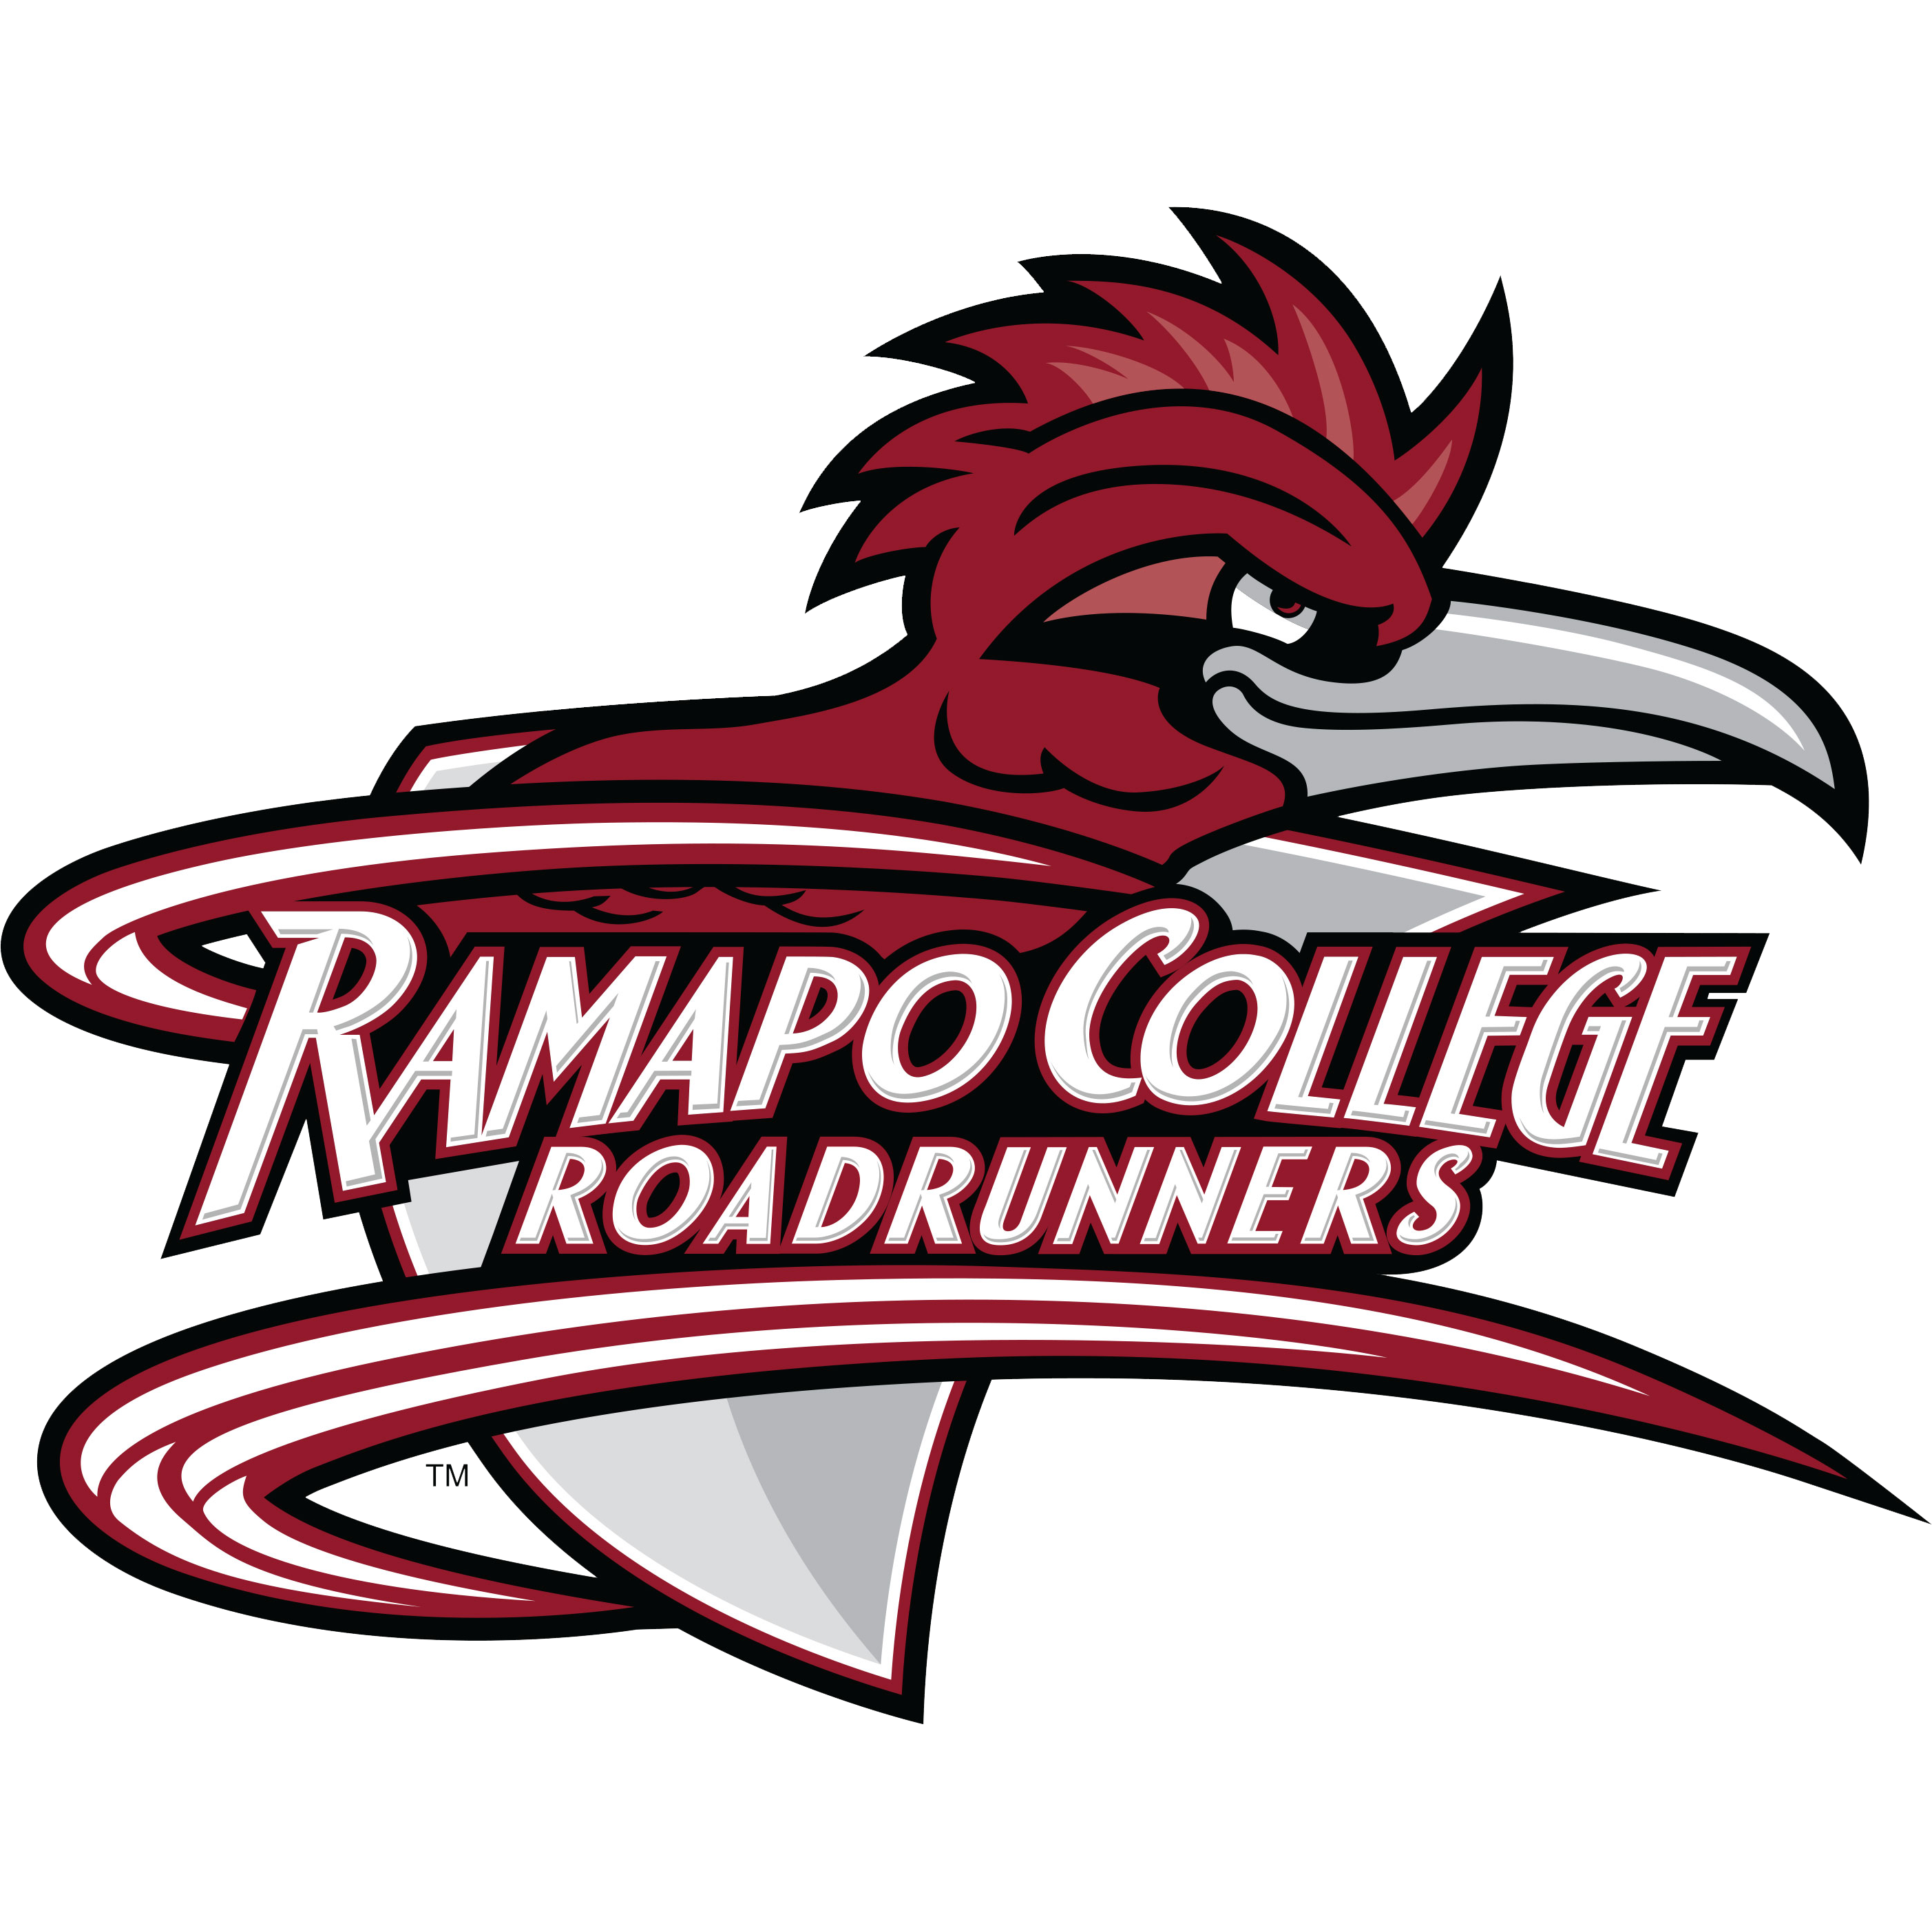 Mule basketball mascot clipart png transparent library Ramapo Ramapo Womens College Volleyball - Ramapo News, Scores, and Stats png transparent library